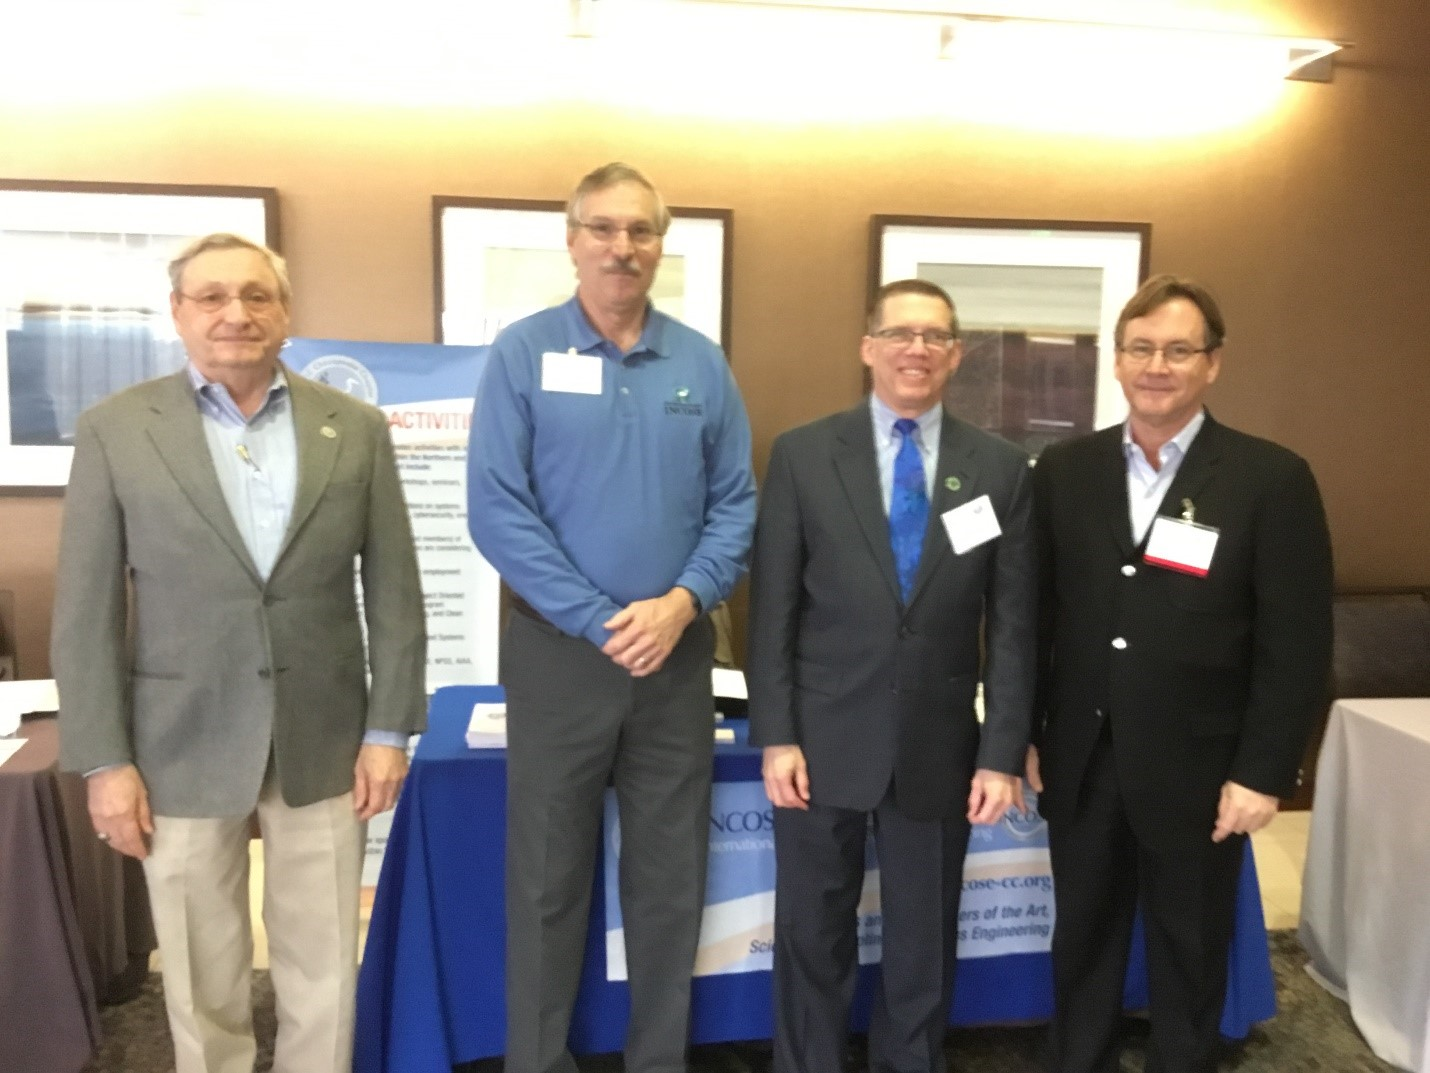 Participants of the January 29, 2018 reStart job fair event: L-R: George Anderson, ESEP, Membership committee member, Mike Pafford, 2018 Chesapeake Chapter Past-President, Mark Kaczmarek, ASEP, Membership Director, James Hubbell, ESEP, member-at-large. Photo by Sarah Lawrence.